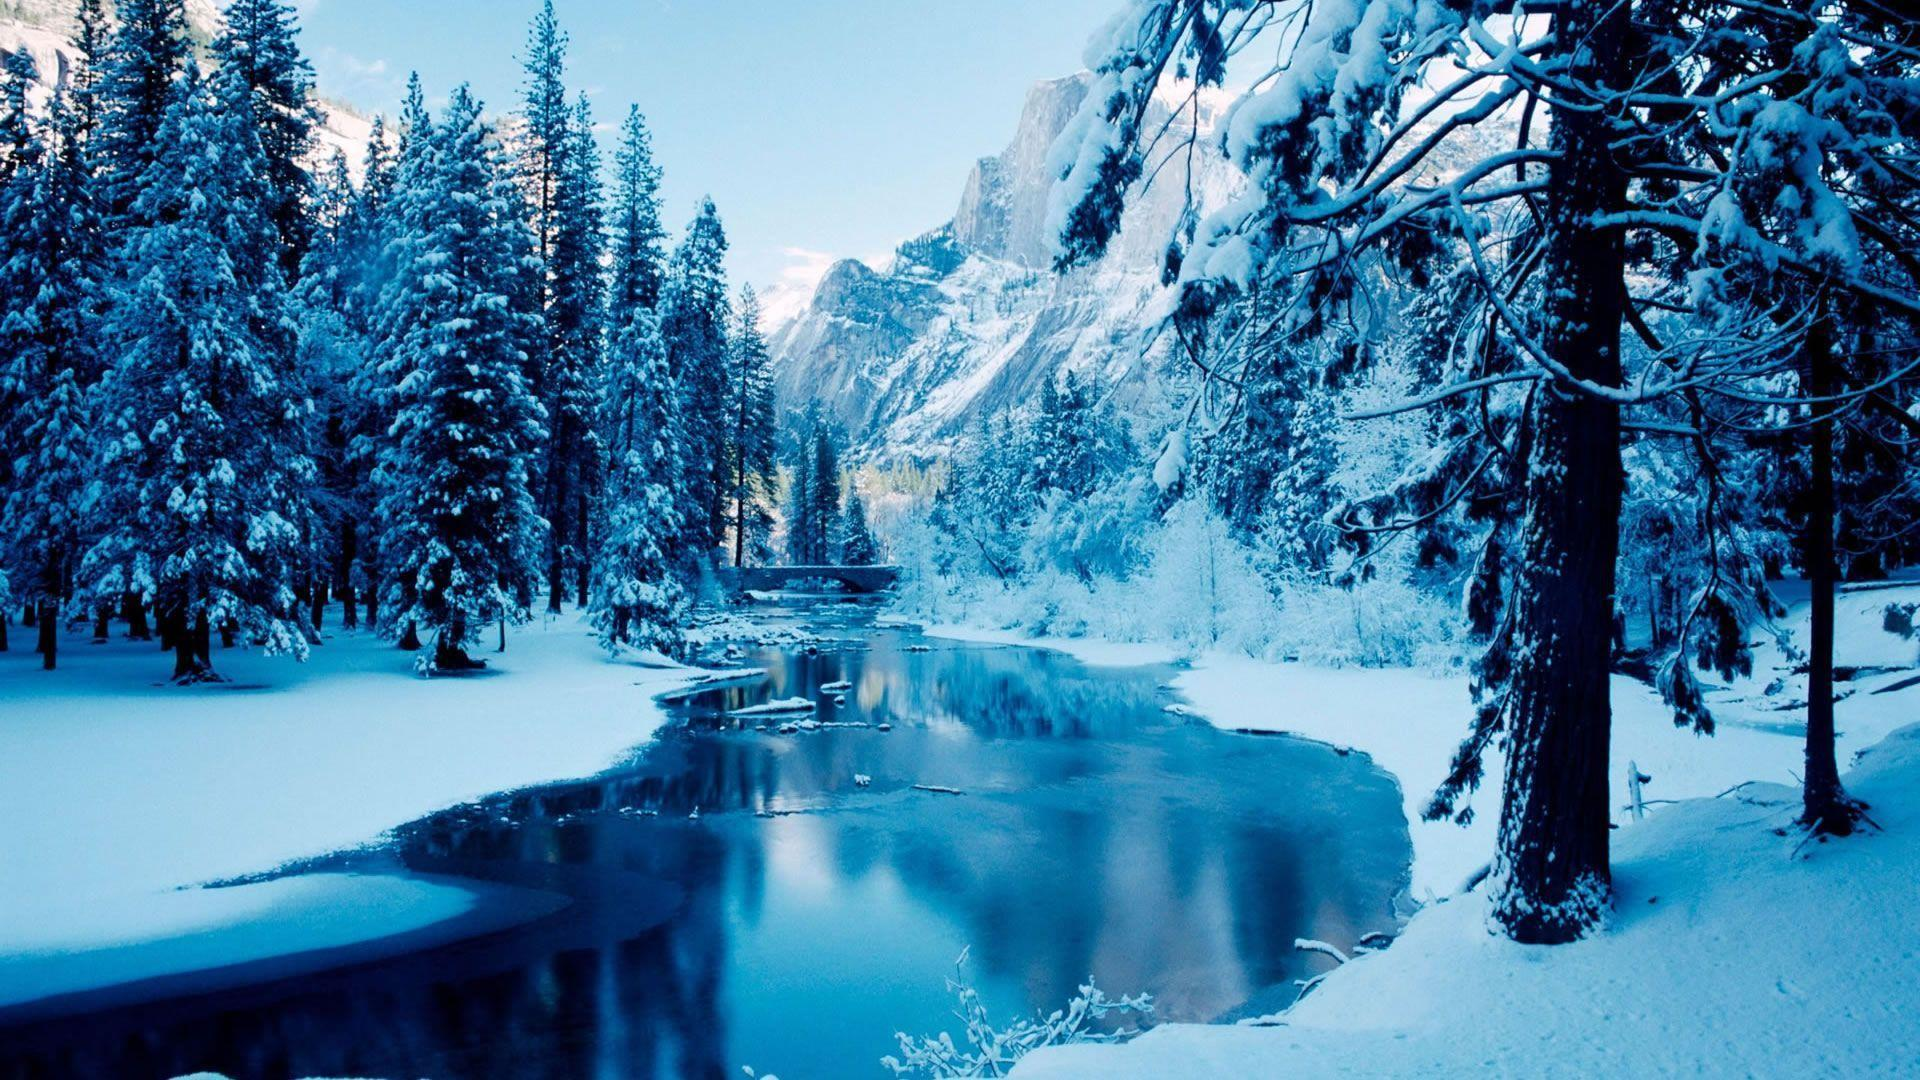 Winter Wallpaper 1920X1080 Hd 35544 Hd Wallpapers in Nature ...